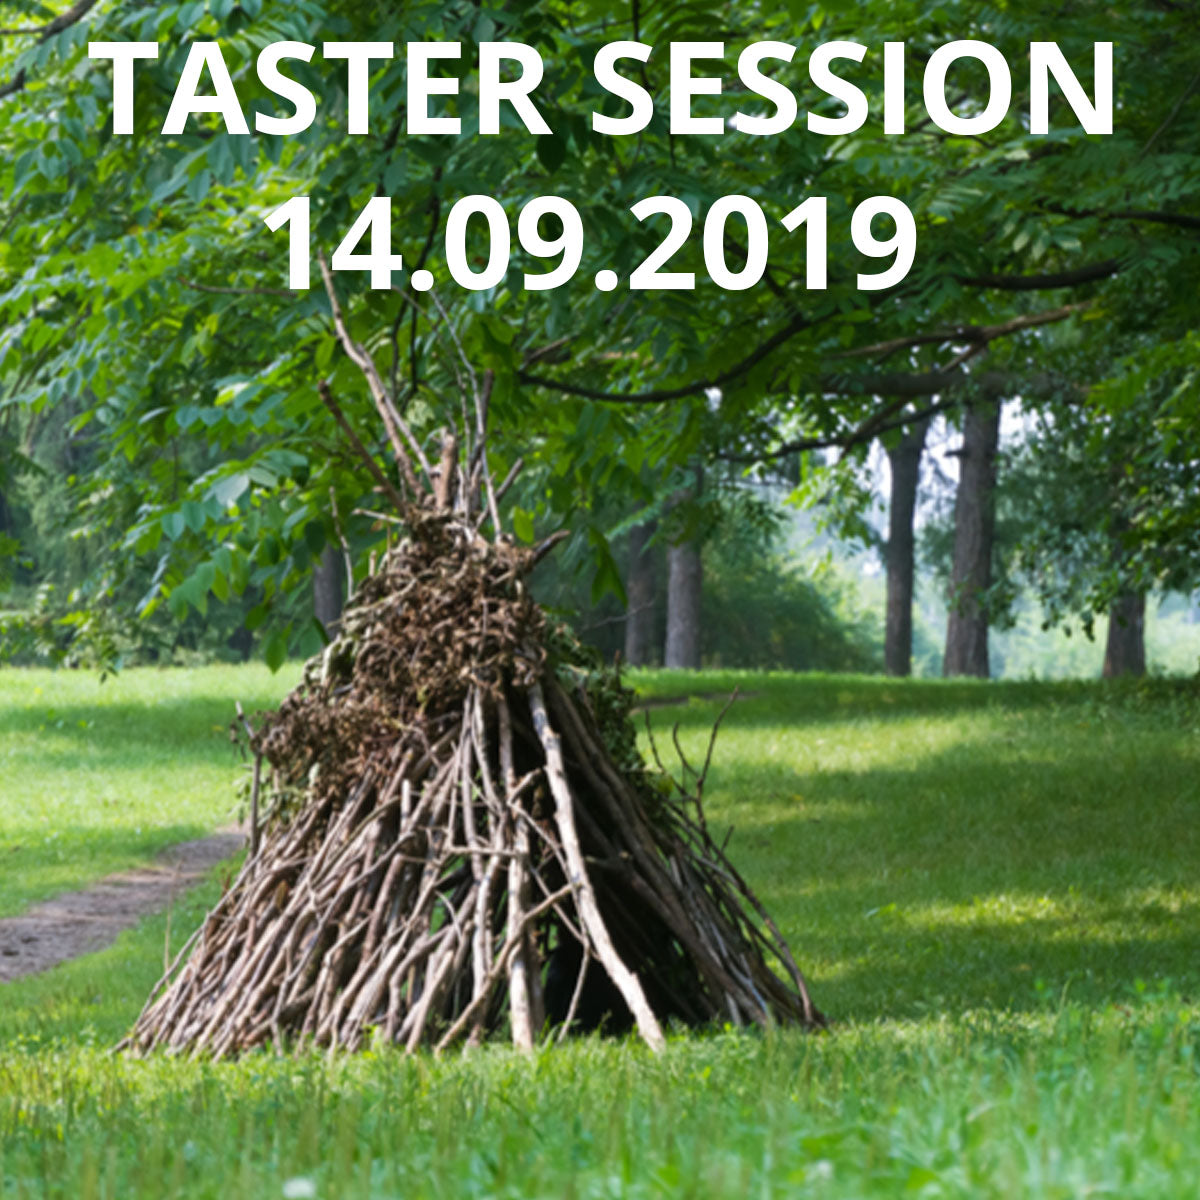 Forest School Taster Session 14-09-2019